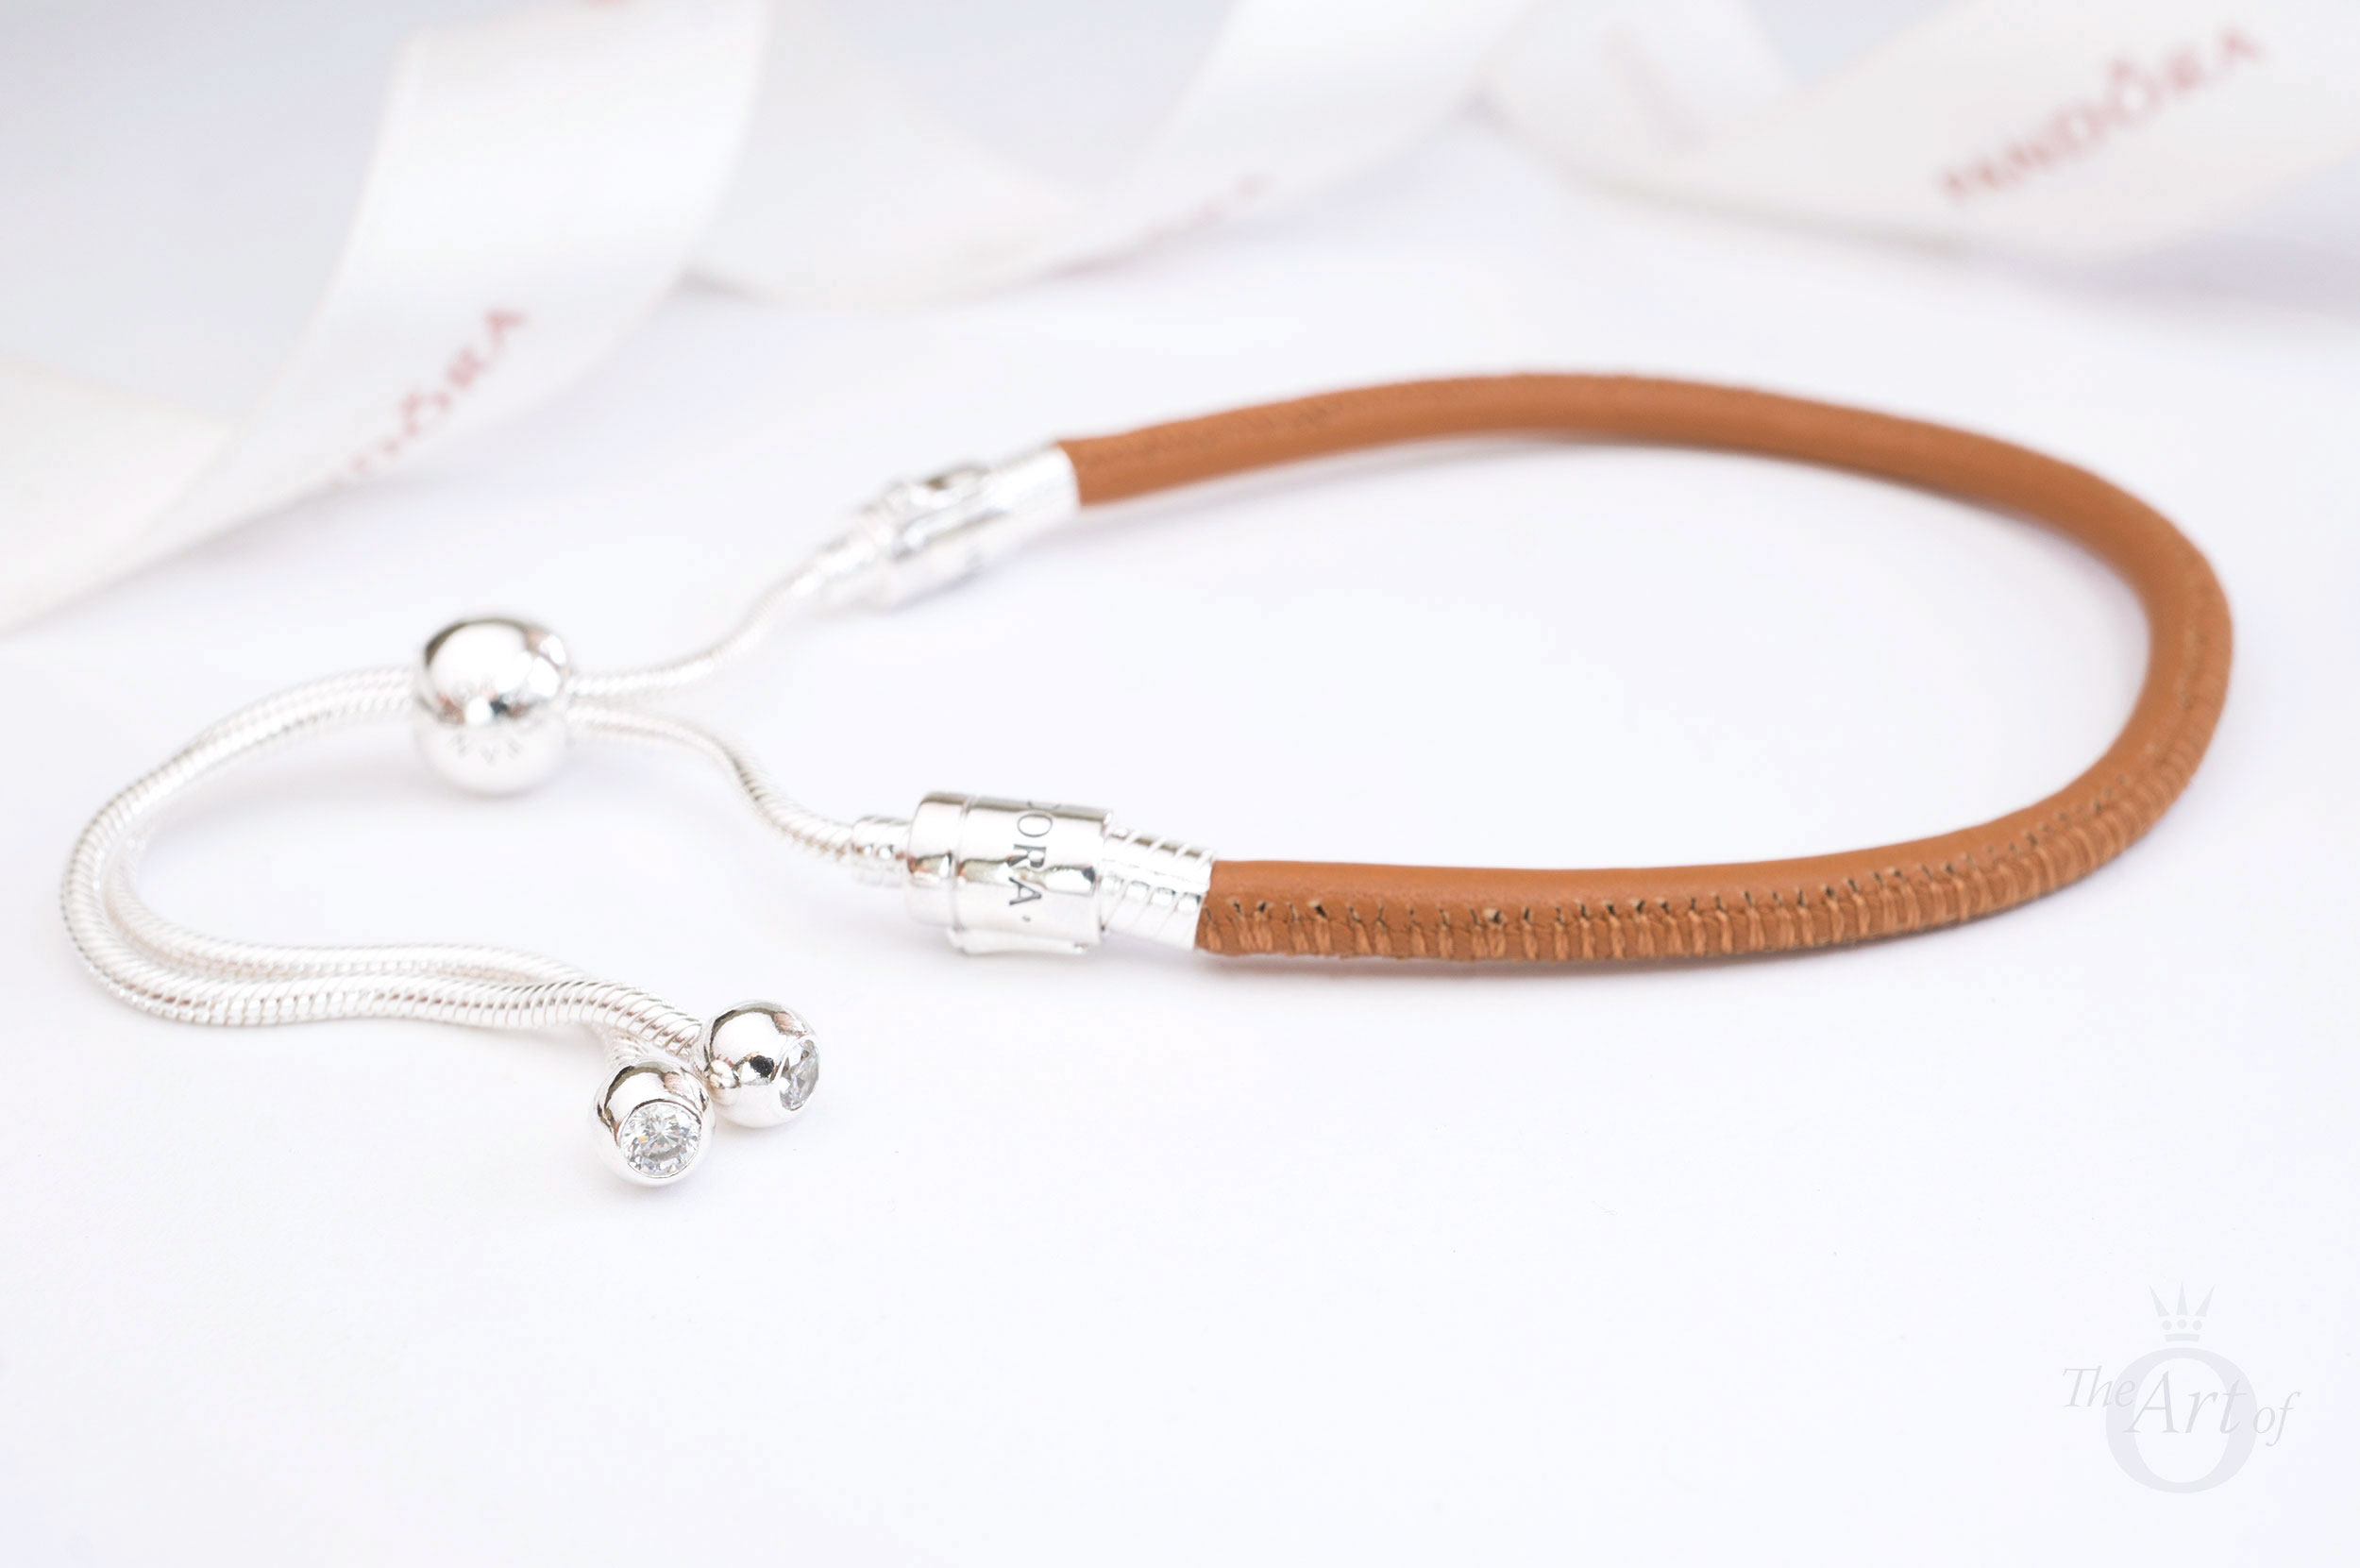 b354e3f44 REVIEW: PANDORA Moments Sliding Leather Bracelet, Golden Tan - The ...